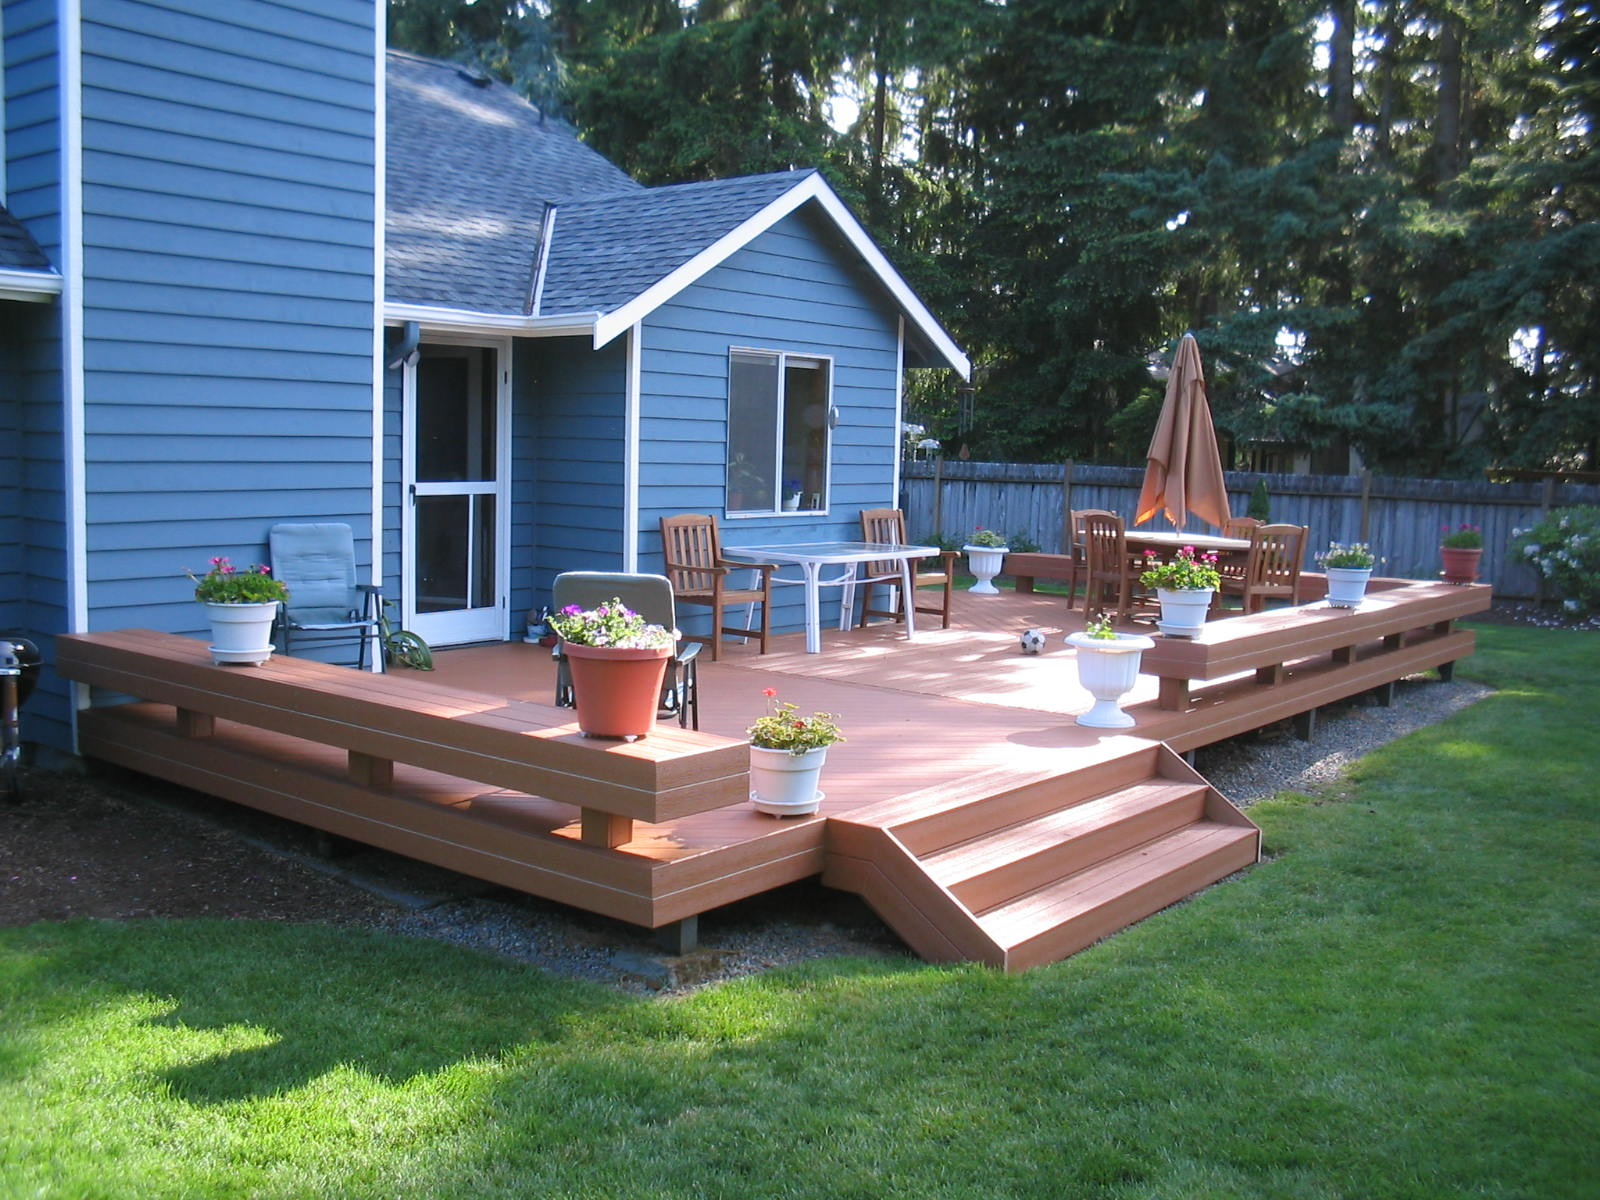 Backyard Deck Plans : small deck design ideas  St Louis decks, screened porches, pergolas